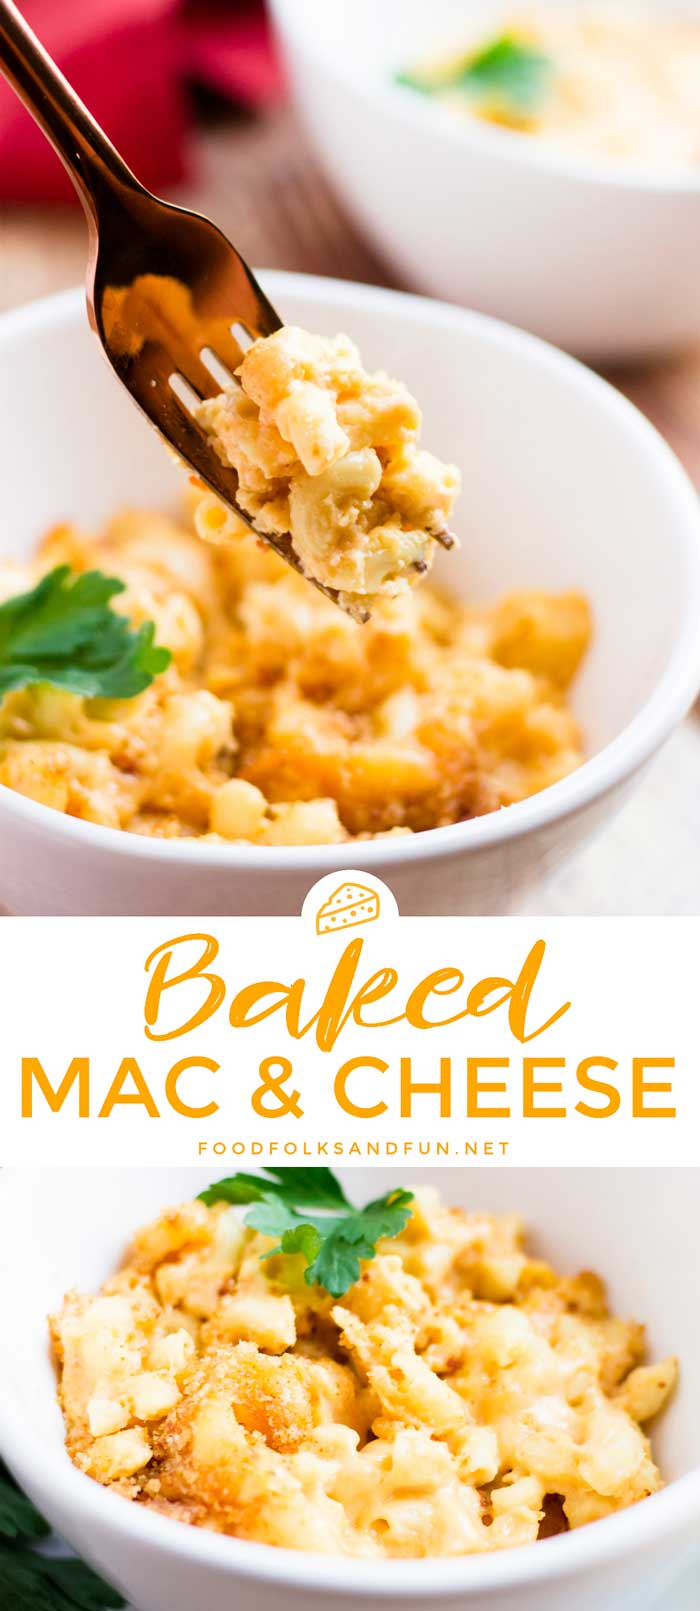 Baked Mac And Cheese Food Folks And Fun